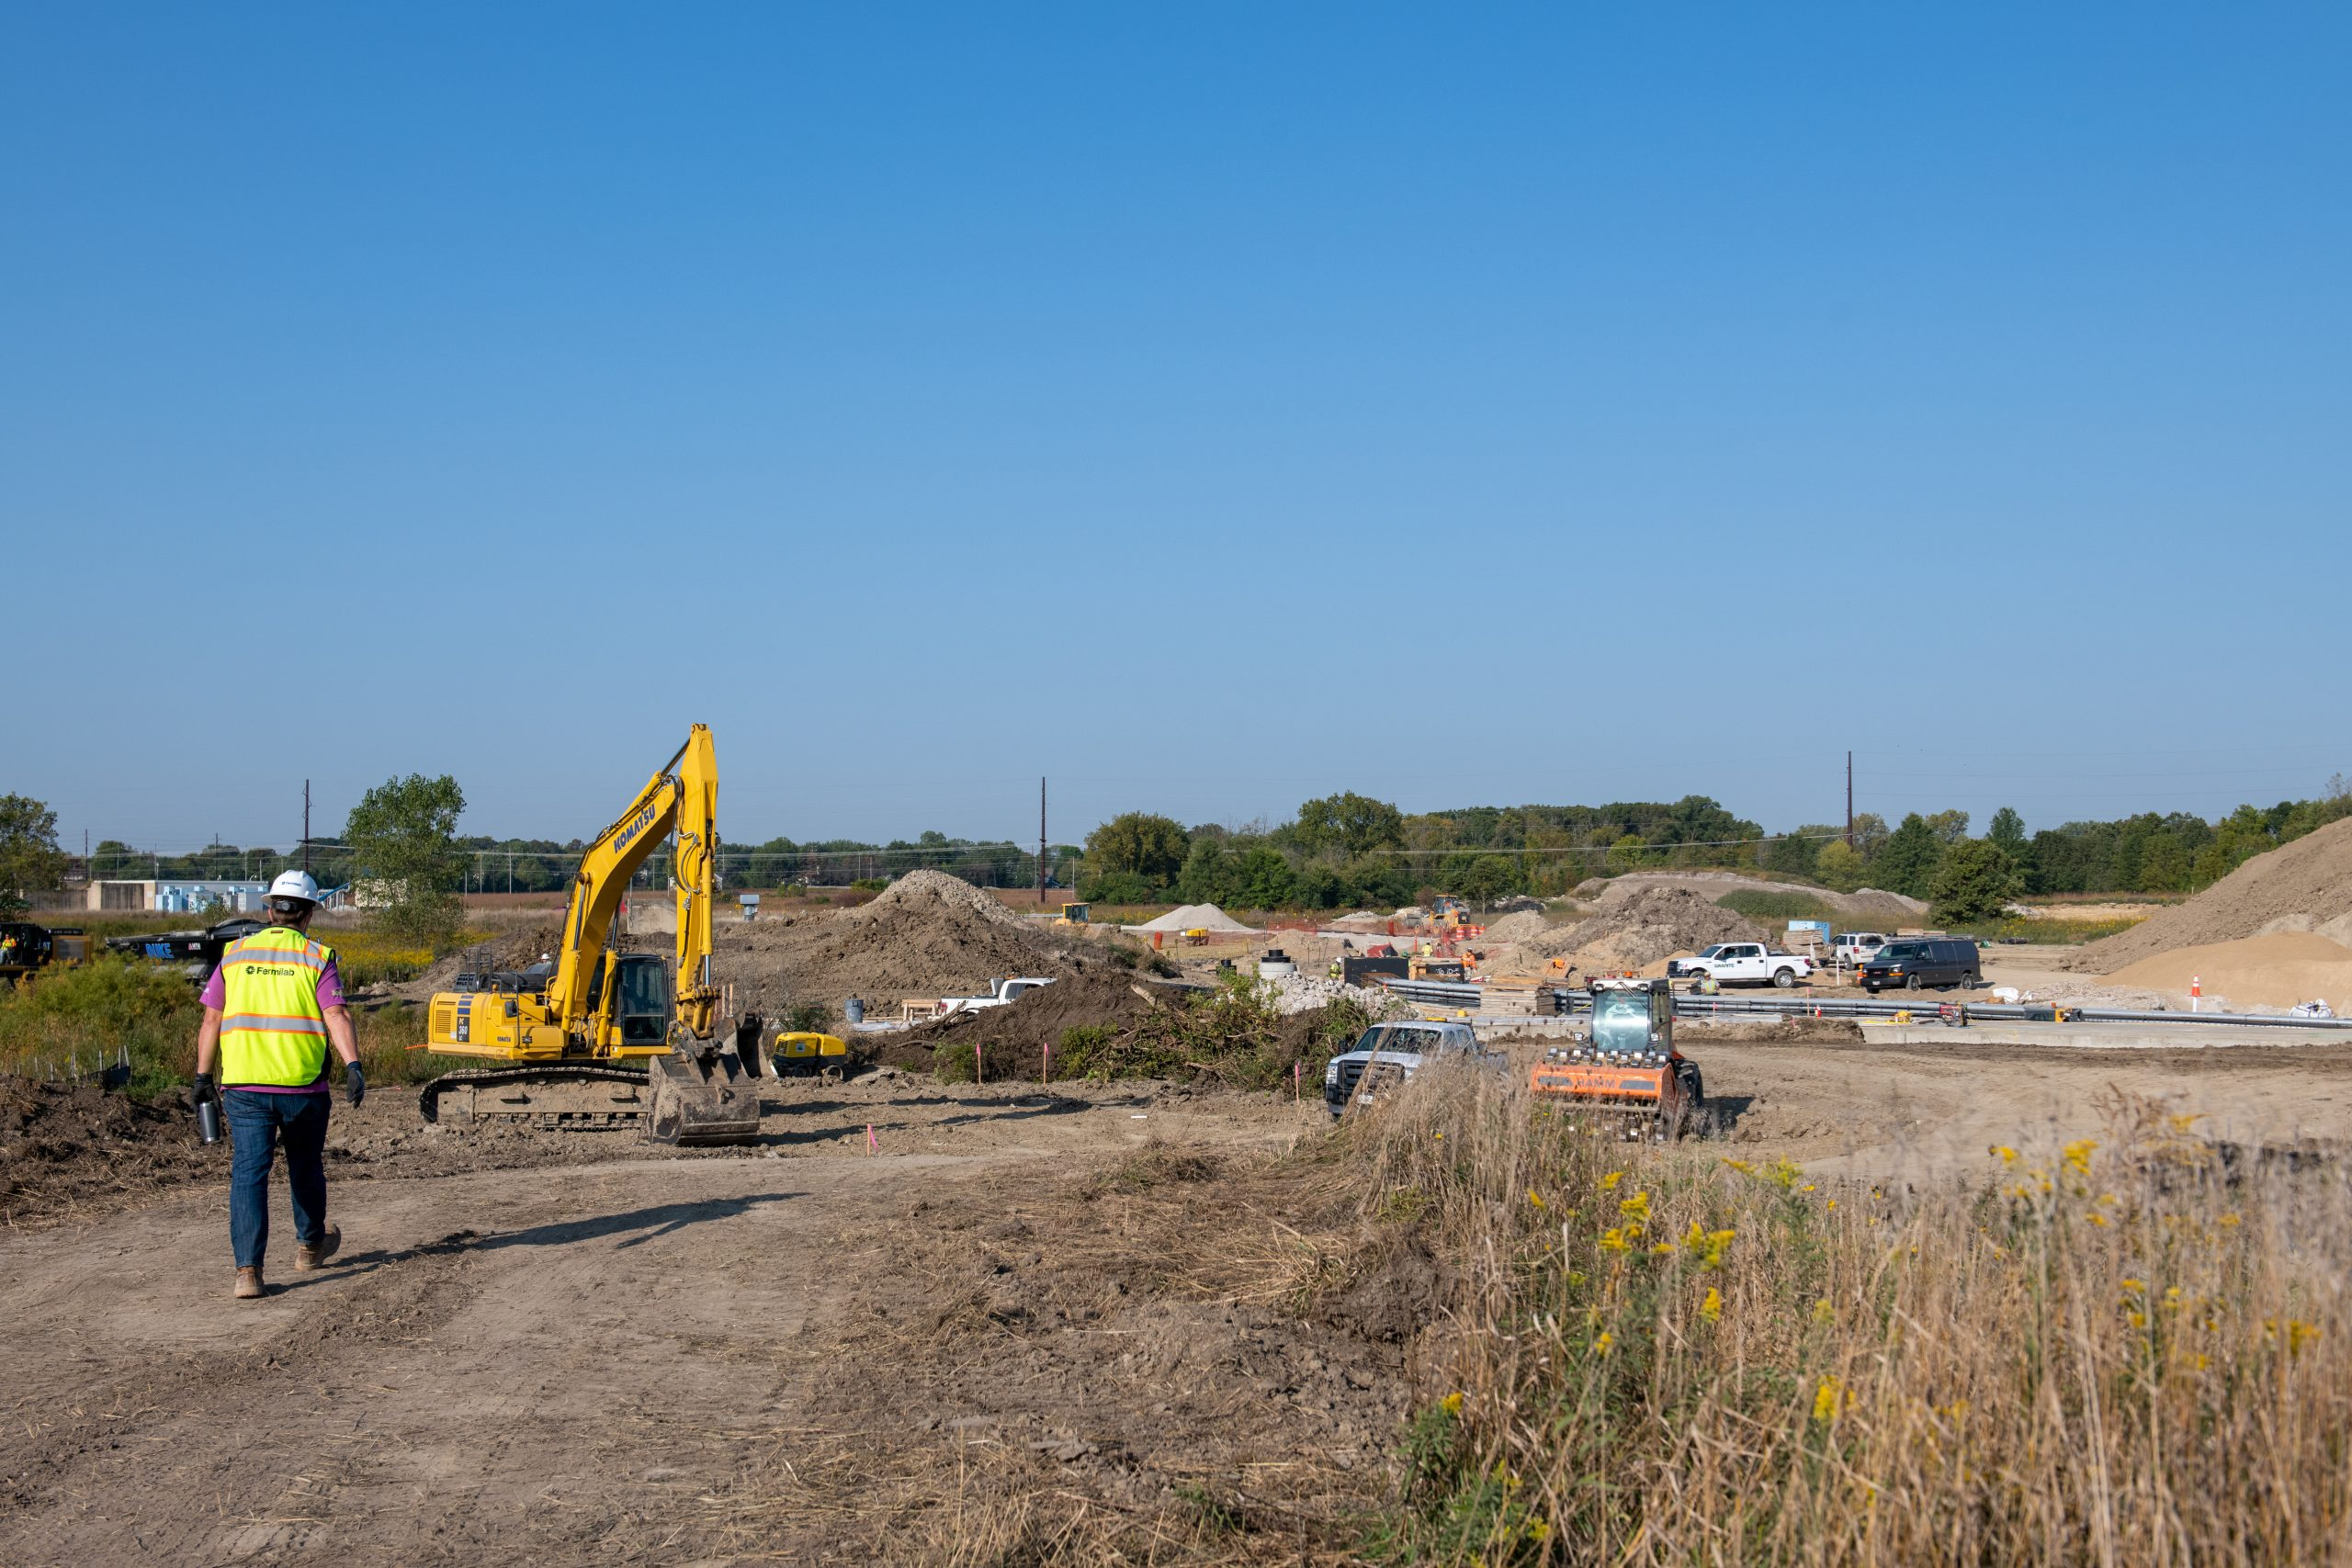 Excavators move earth to prepare the Fermilab site for new accelerator and beam infrastructure, part of the future Long-Baseline Neutrino Facility.